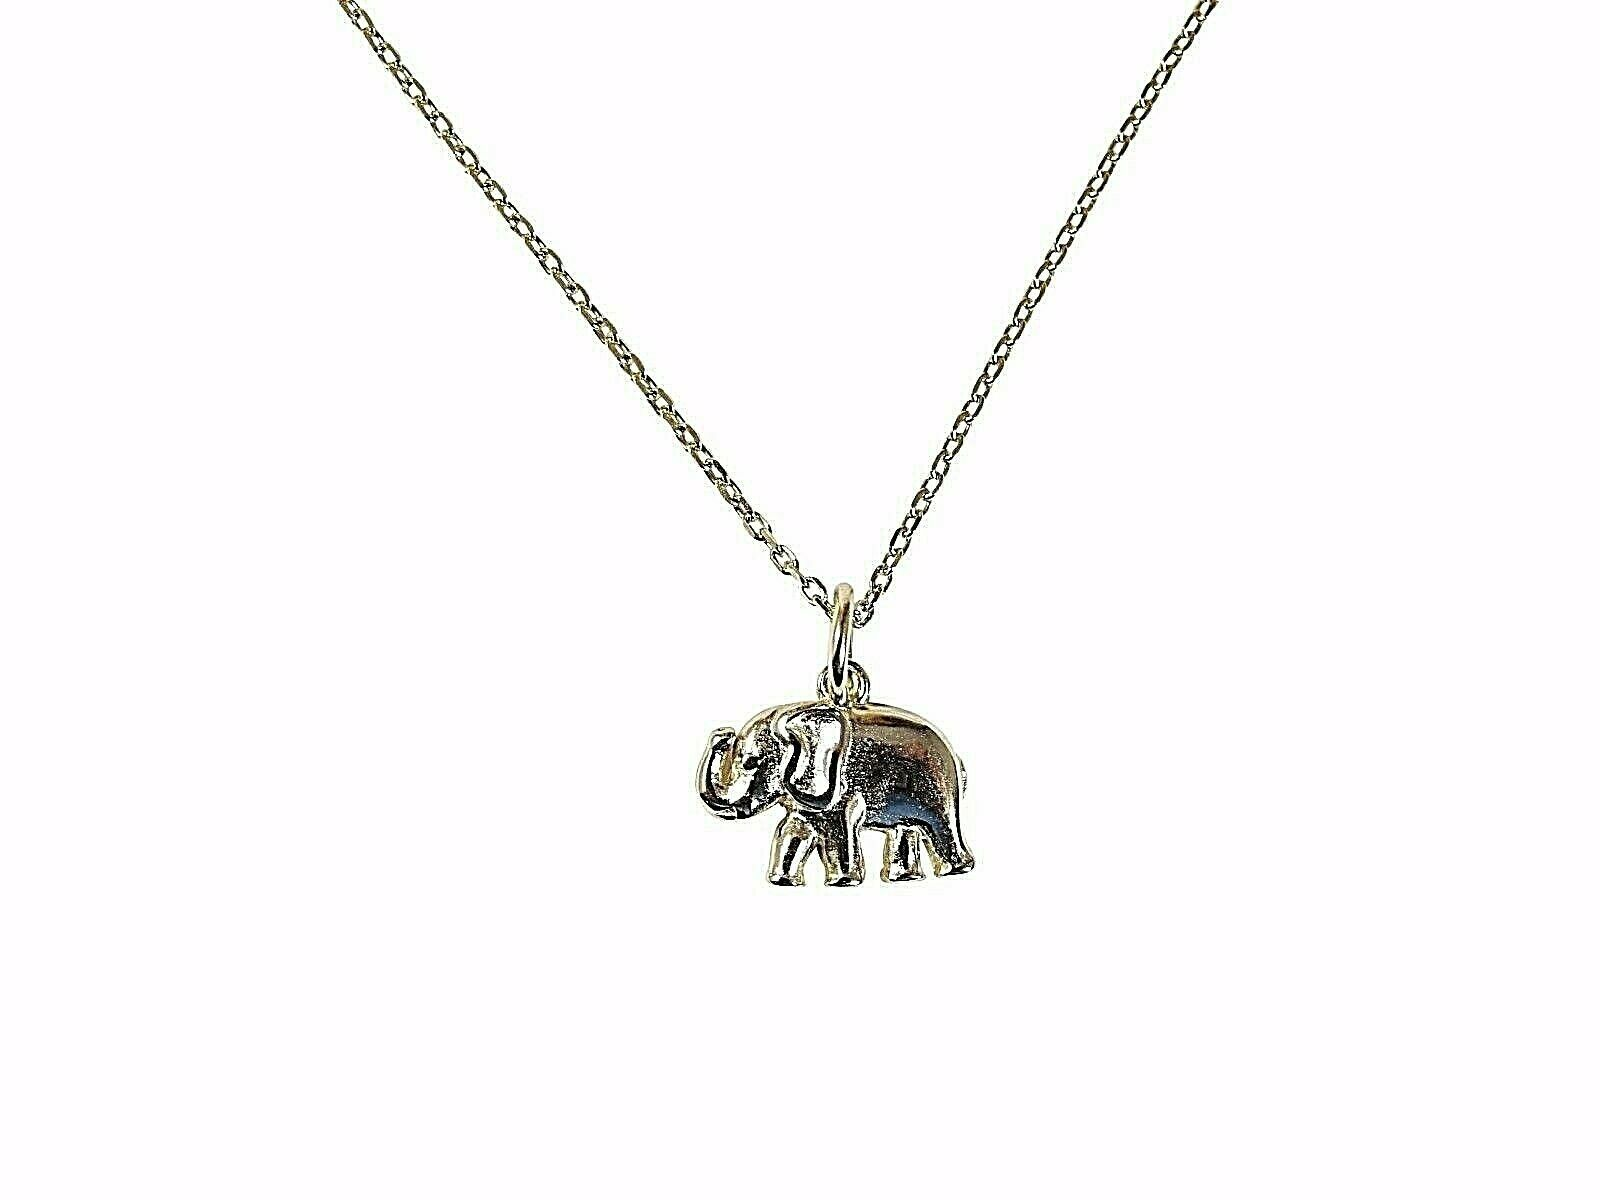 Martinuzzi Accessories Elephant Pendant Necklace 925 Sterling Silver